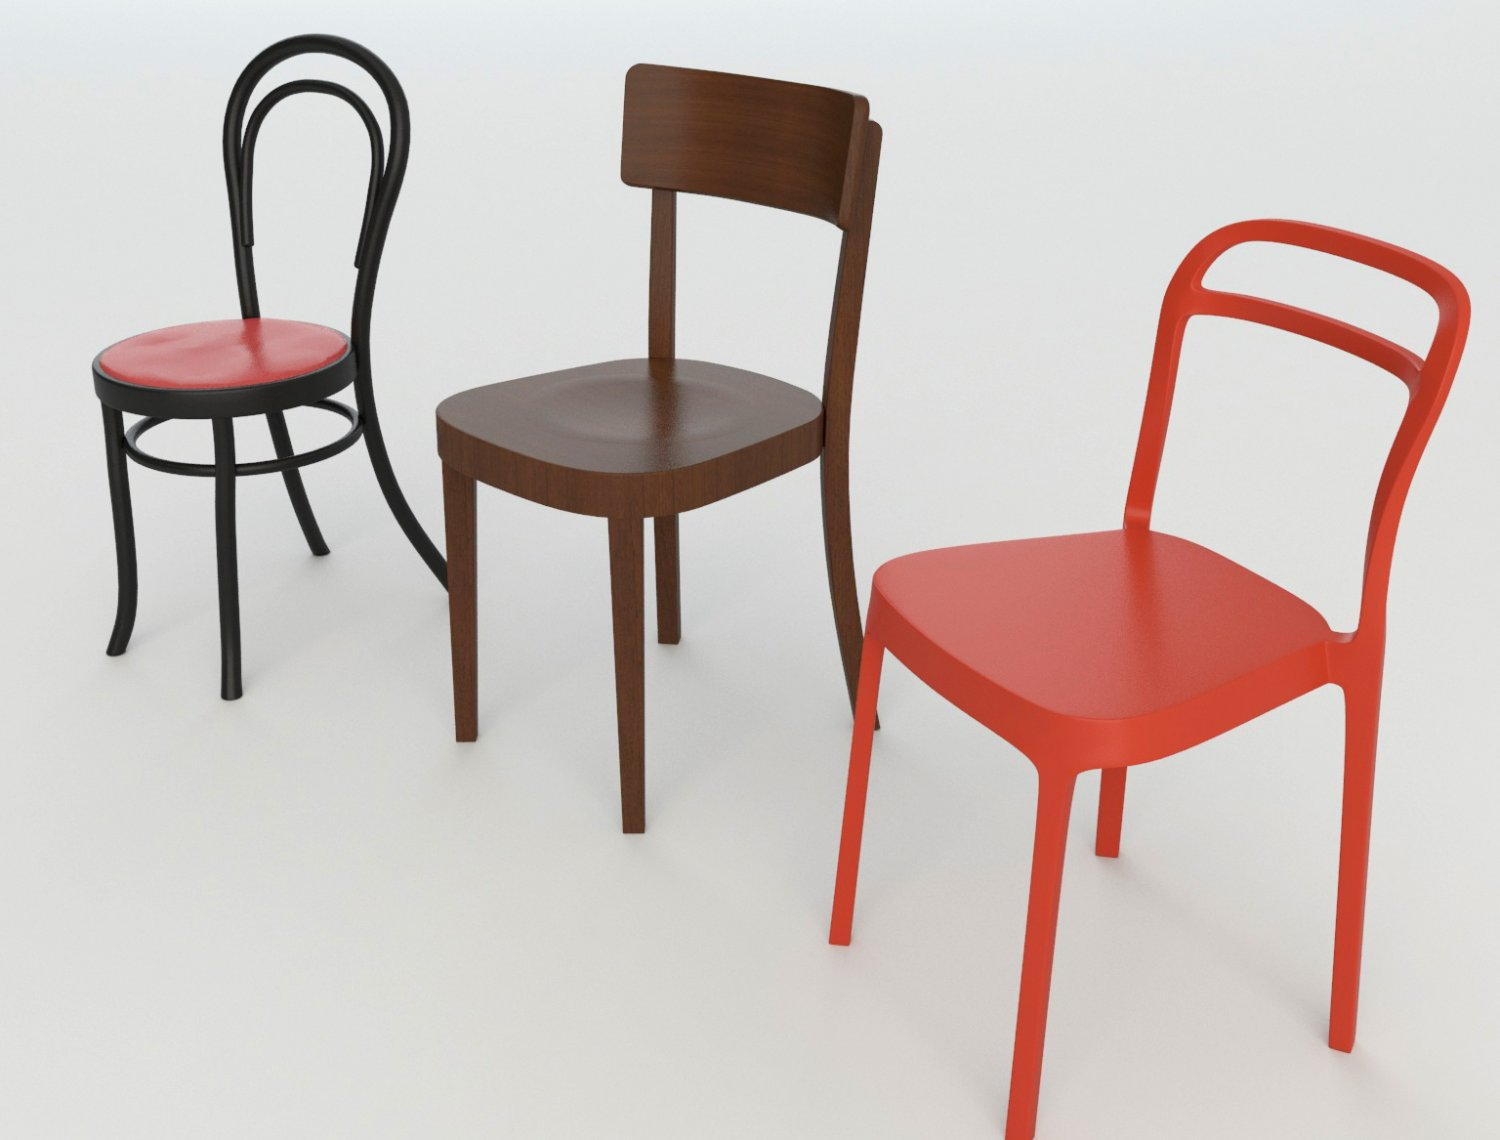 Cafeteria Chairs Bar Cafeteria Chairs 2 3d Model In Set 3dexport